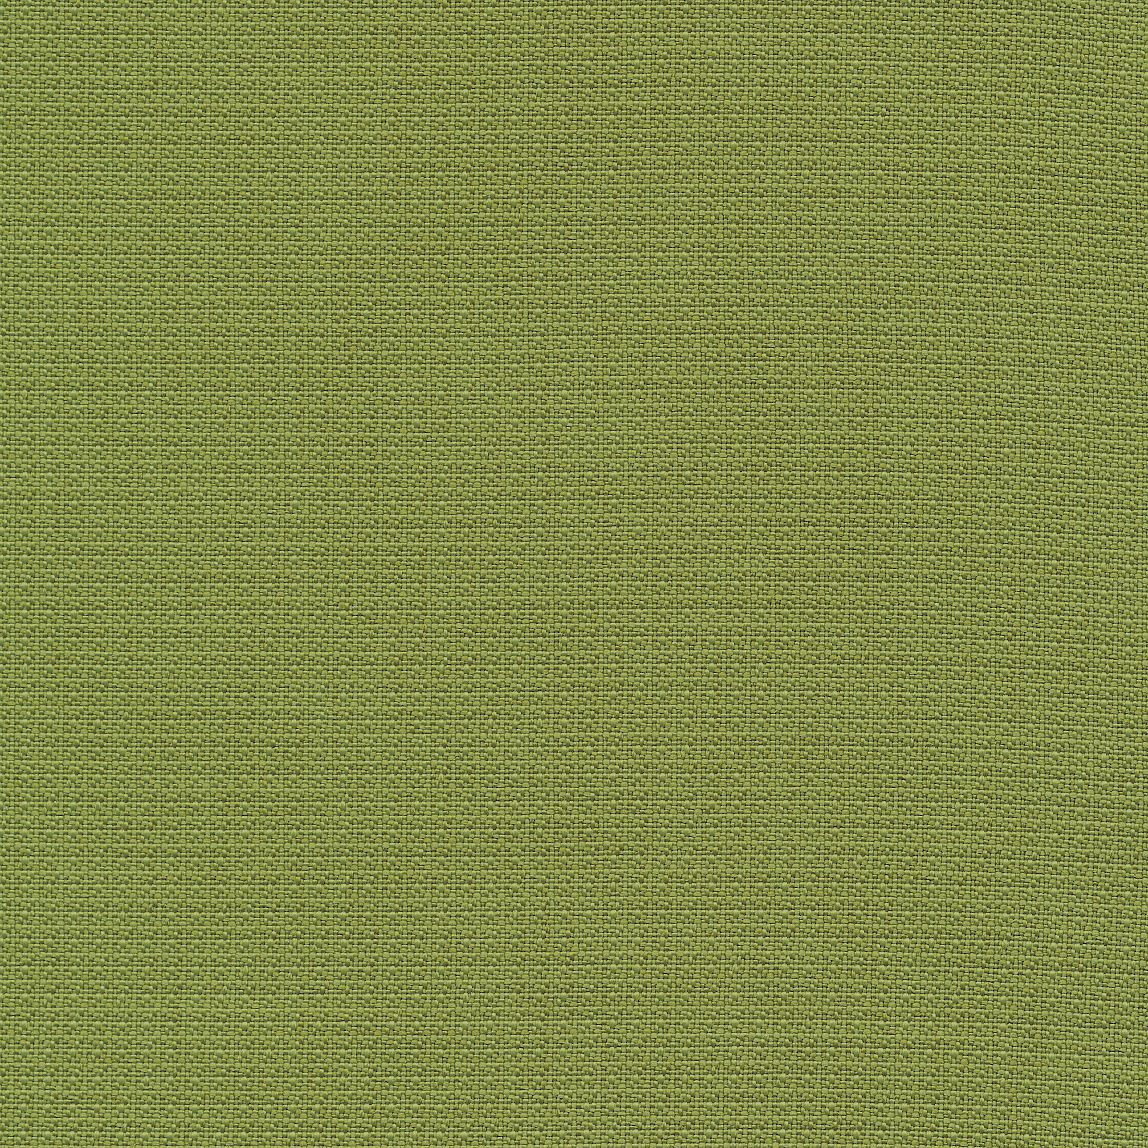 Appoint Seating Lawn Swatch